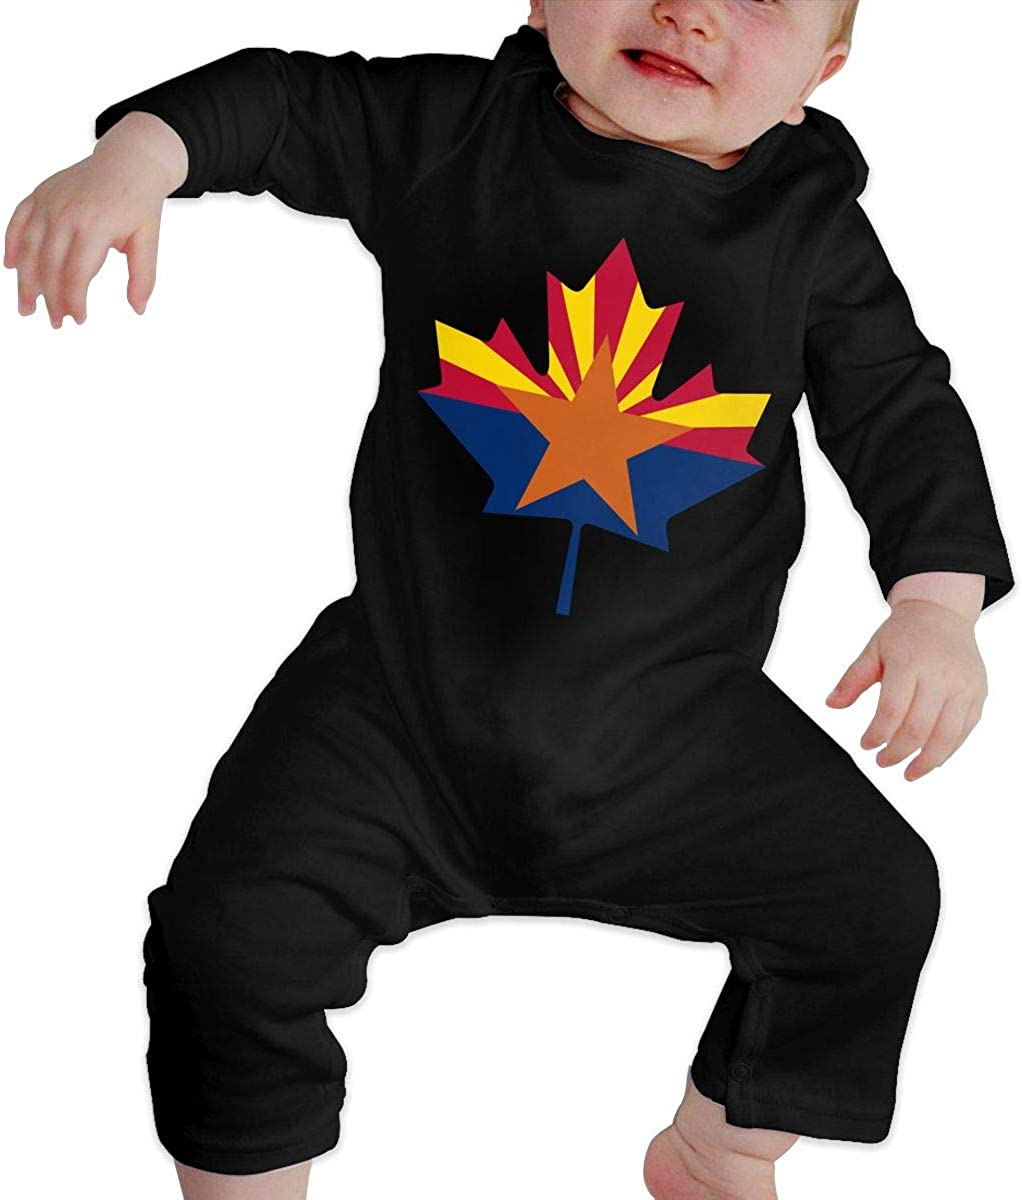 Unisex Baby Romper Jumpsuit Arizona Flag Canada Maple Leaf-1 Organic One-Piece Bodysuits Coverall Outfits